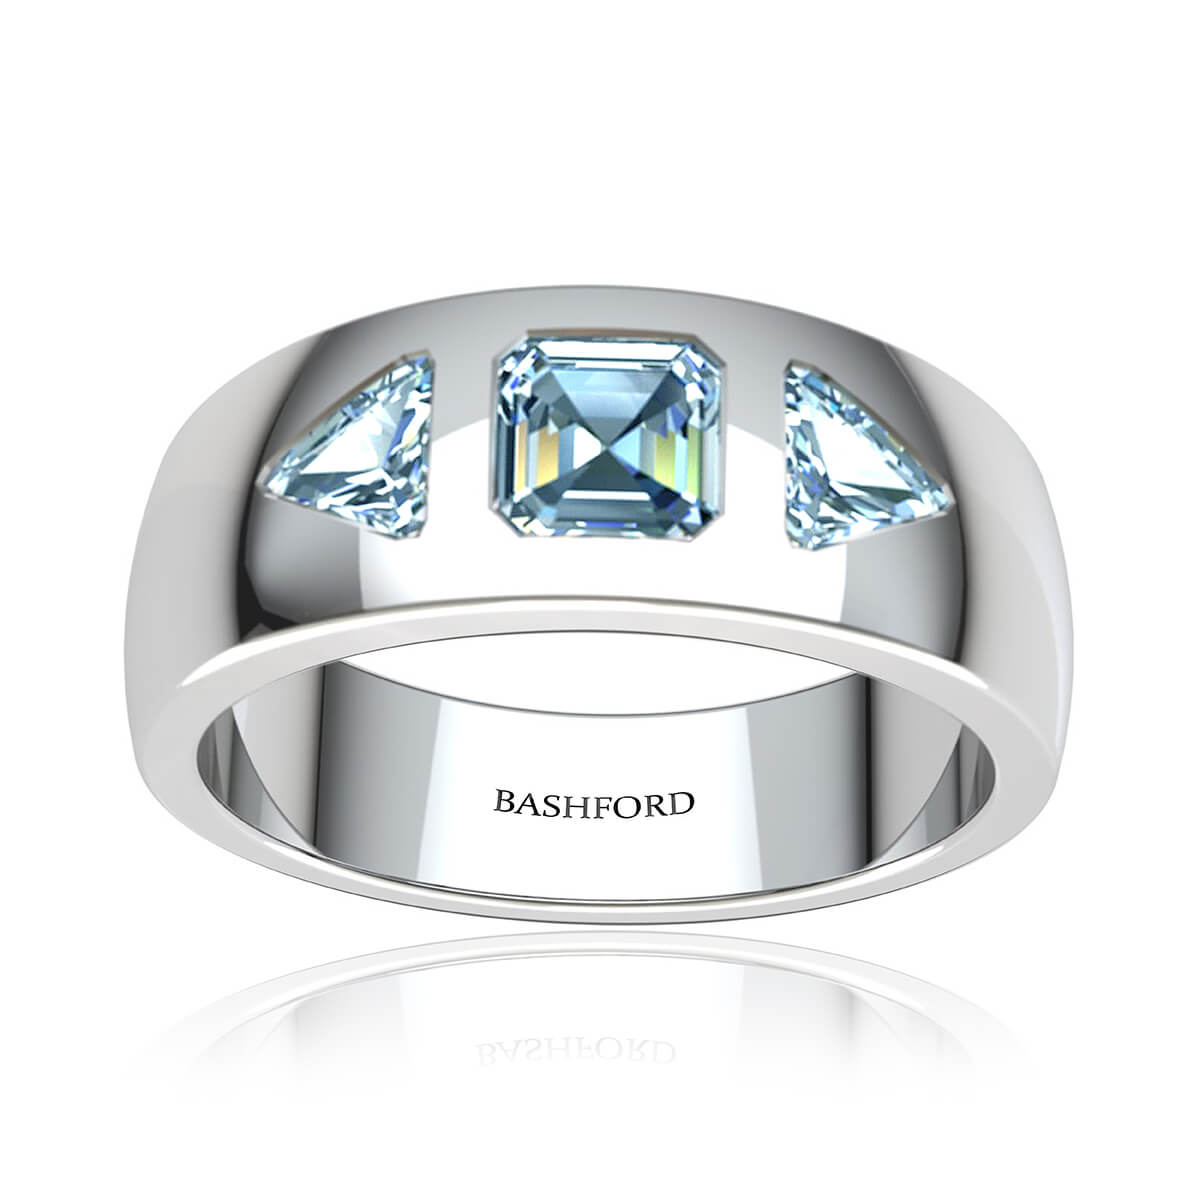 Aspen Diamond Wedding Band (7/8 CT. TW.)